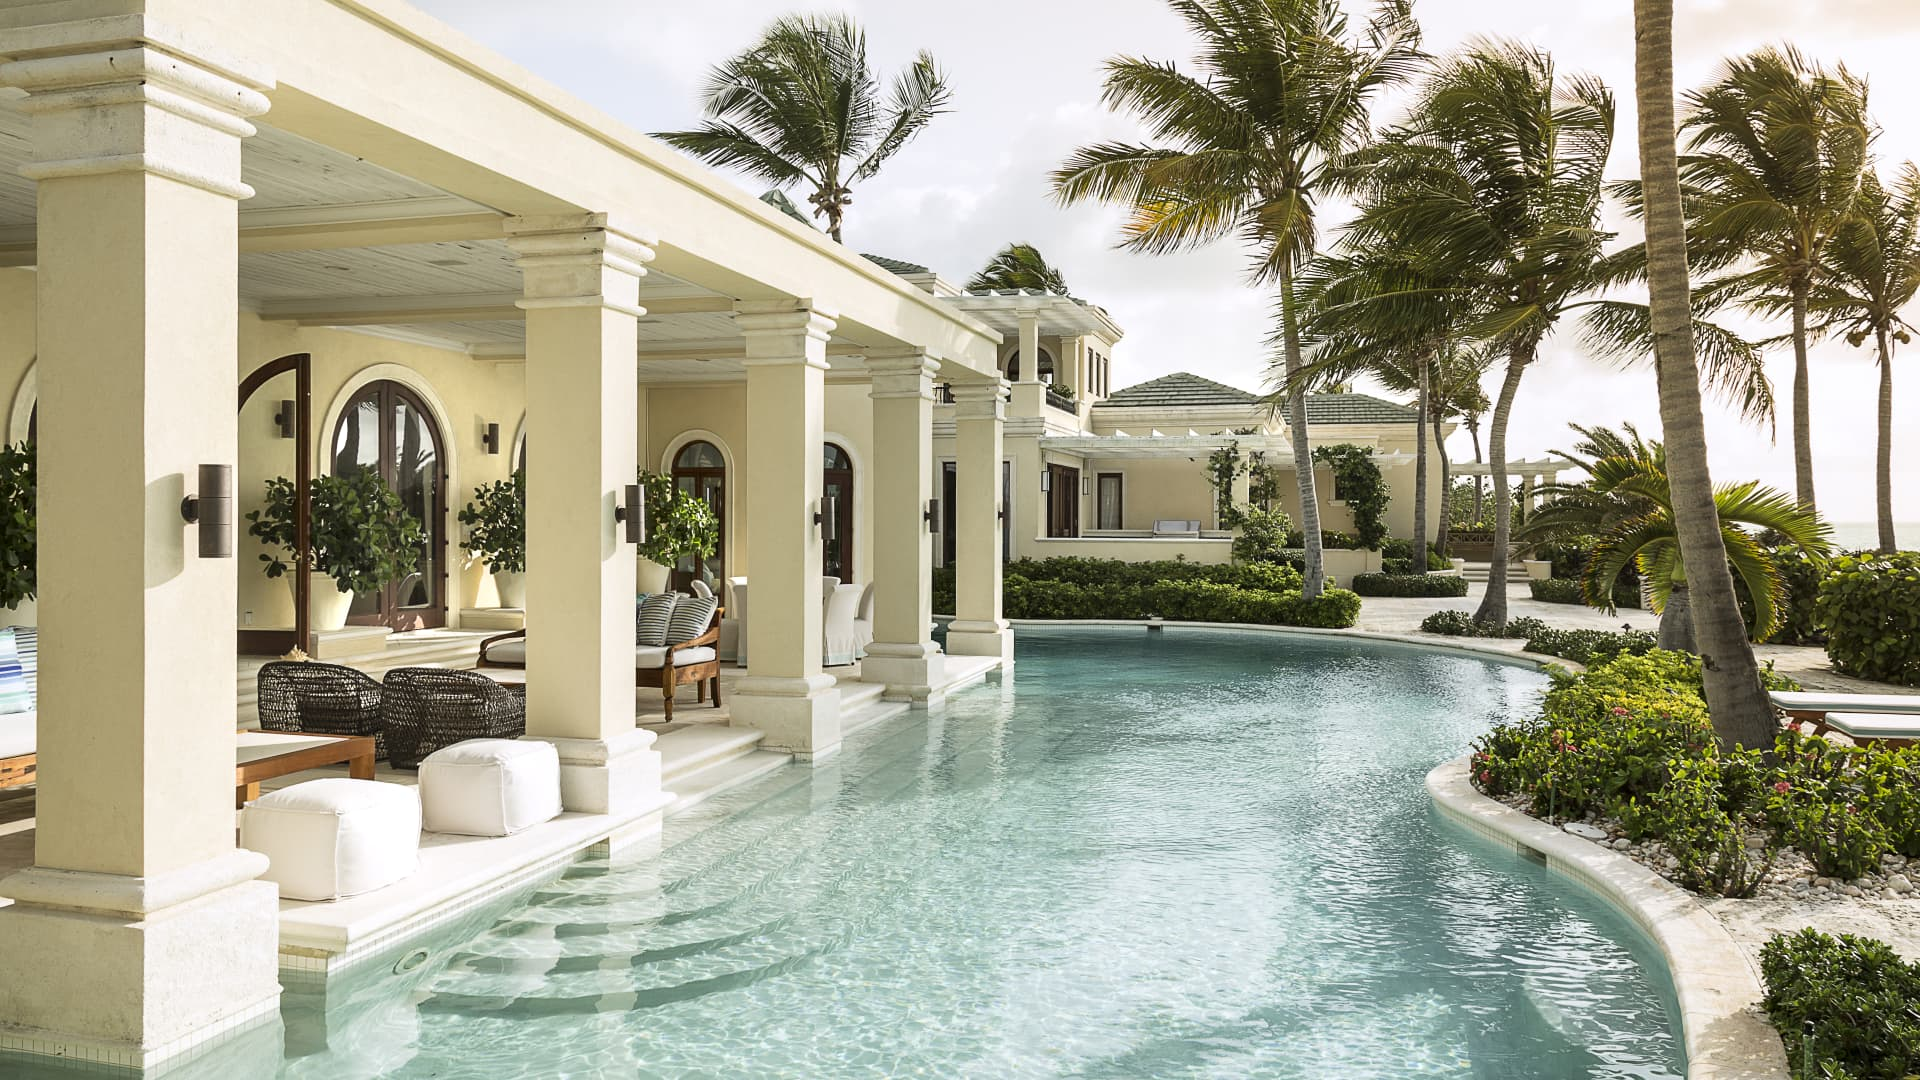 Another Chairman's Collection pick, Turks & Caicos' La Dolce Vita has nine bedrooms and over 12,300 square feet of space.